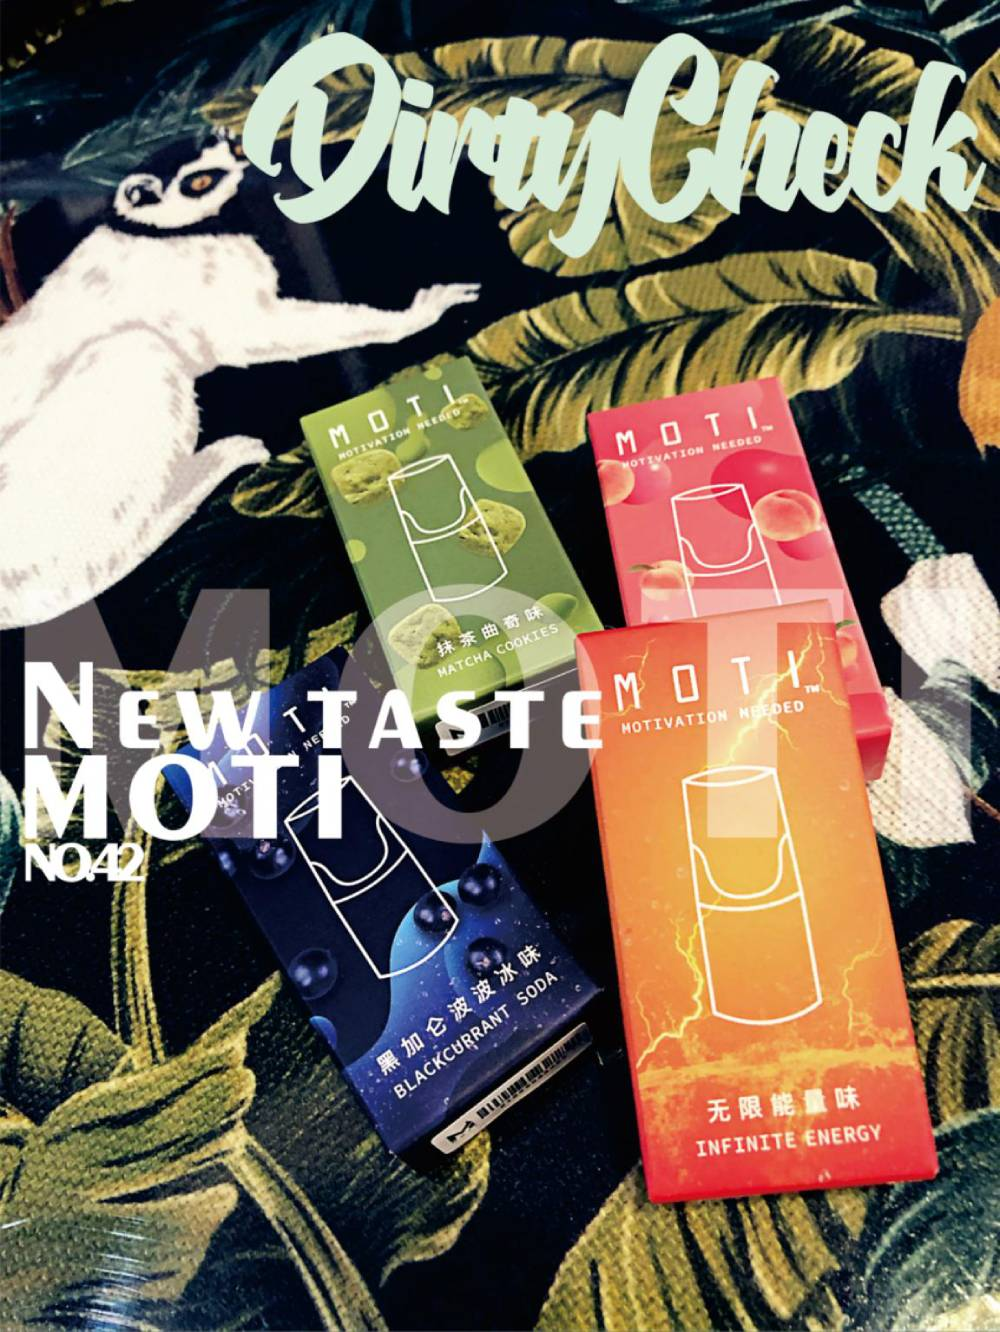 MOTI vape new flavors review- DirtyCheck No.42